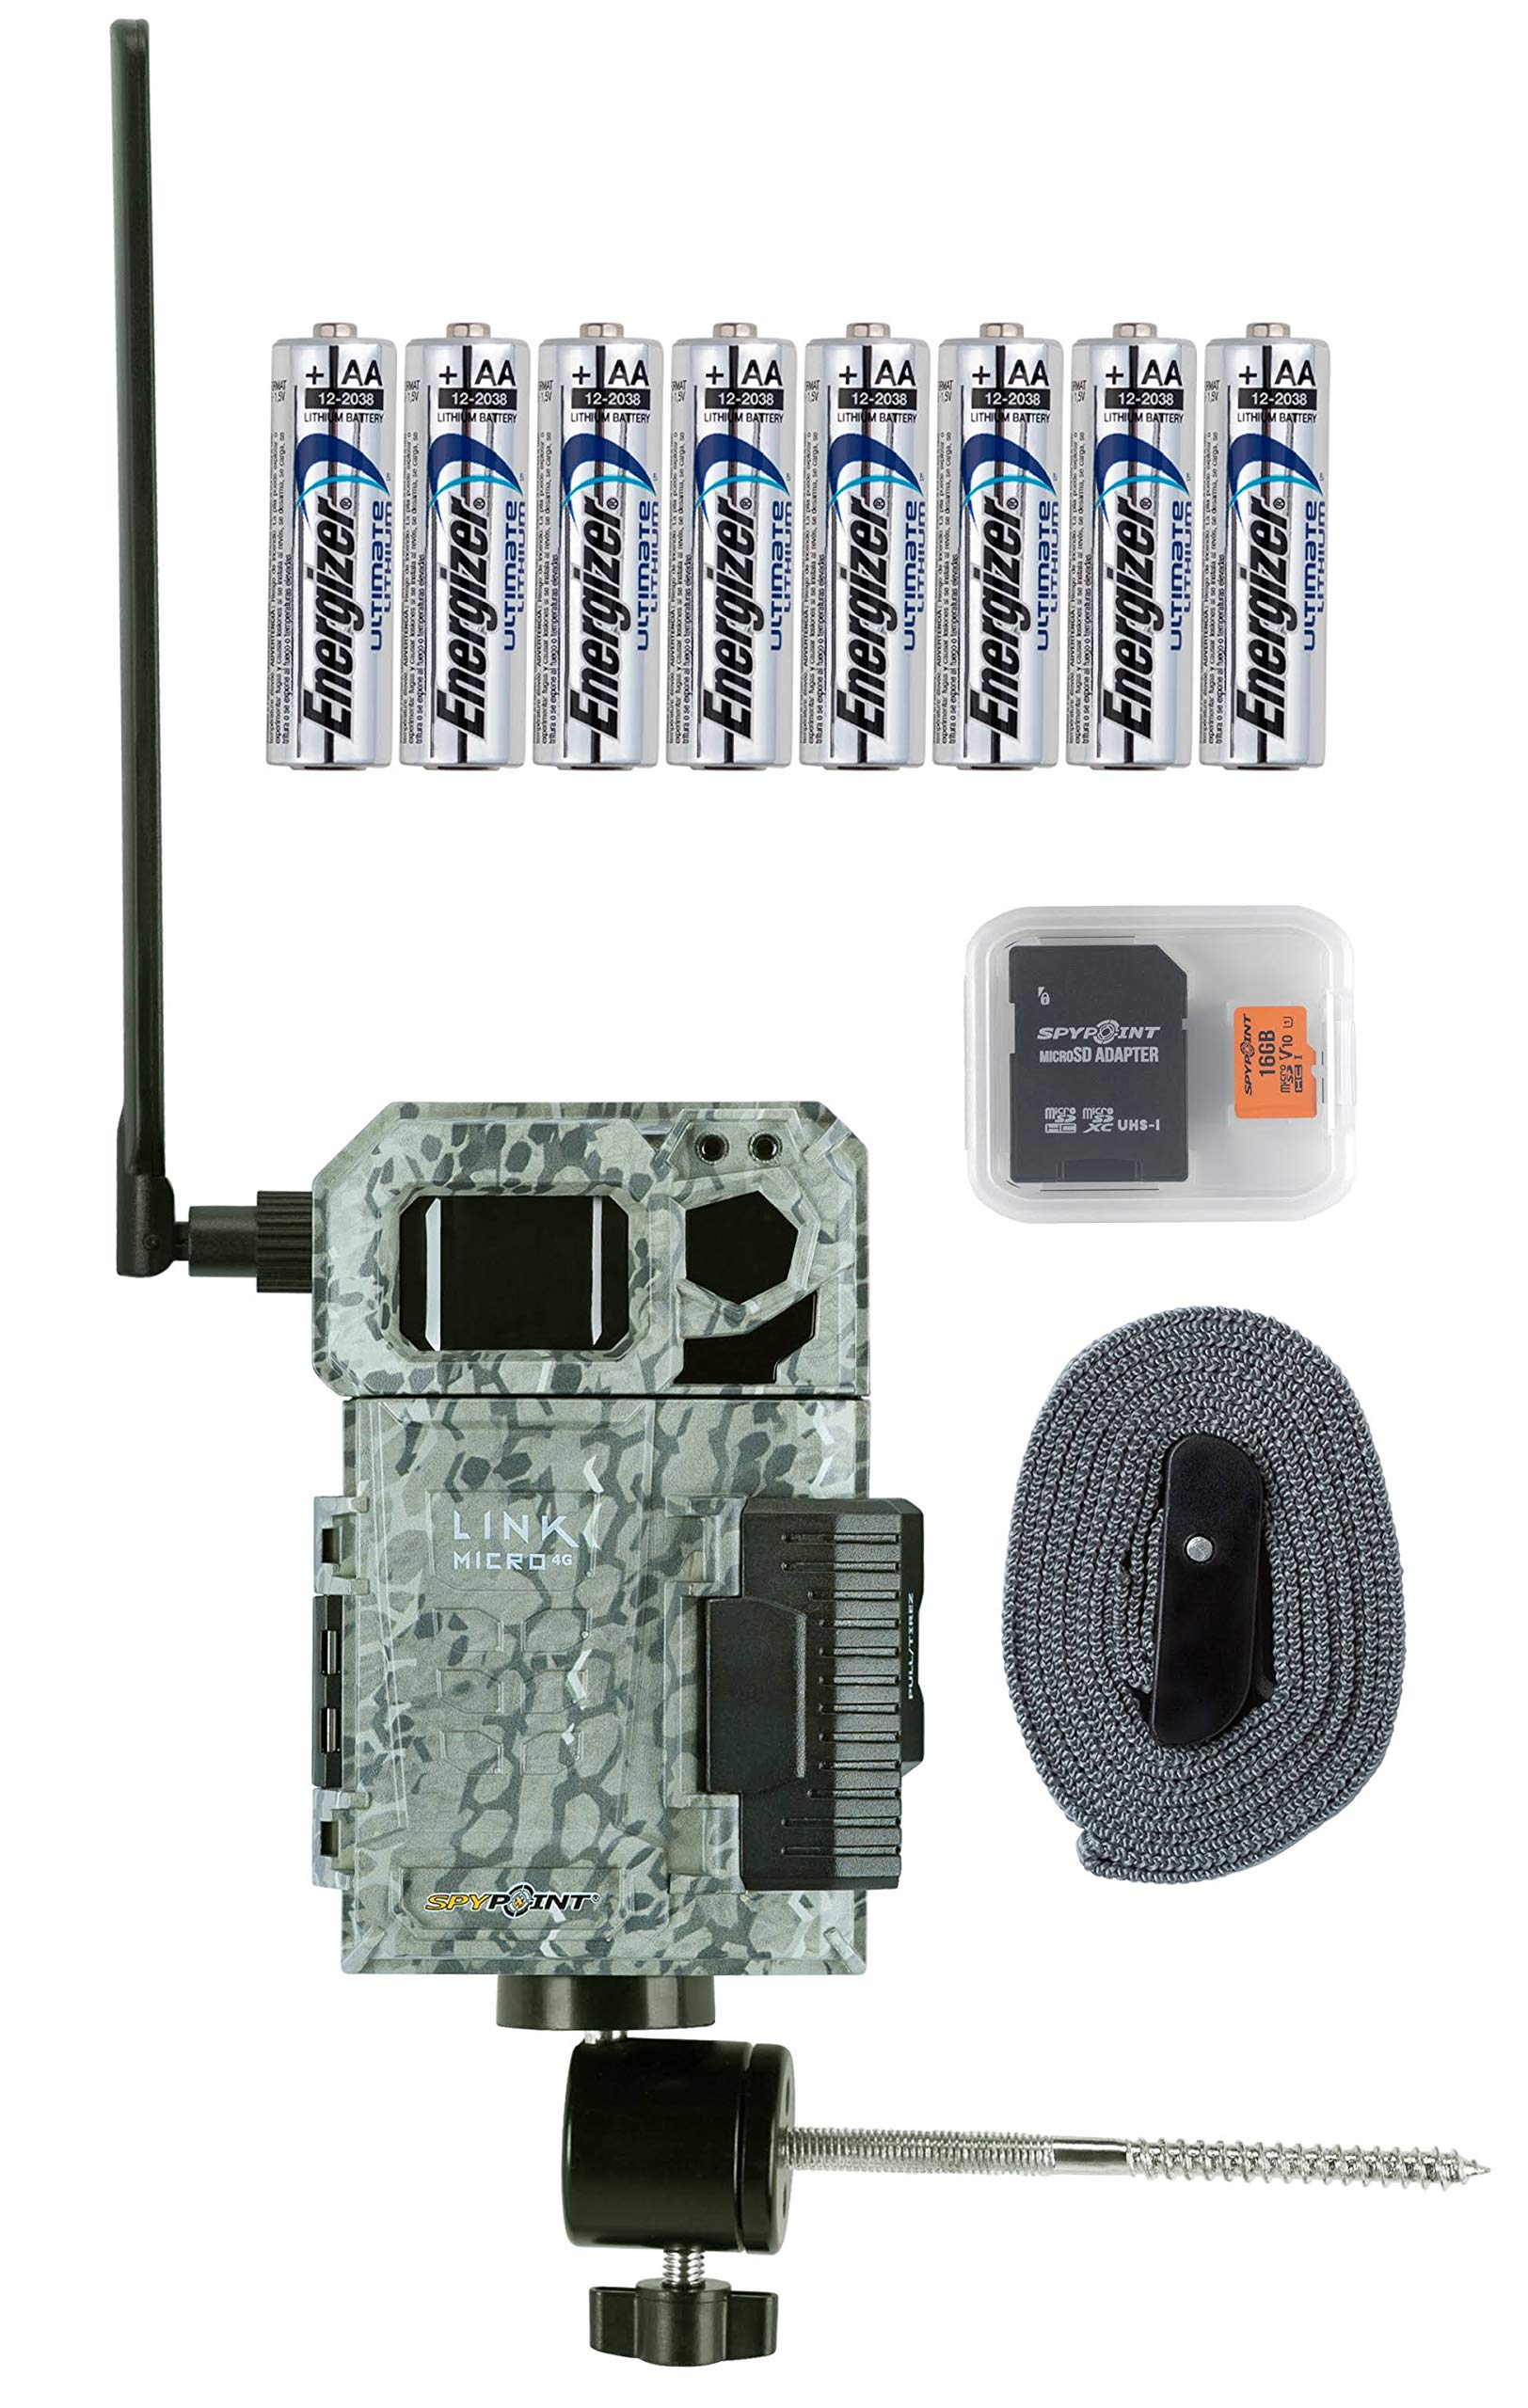 Spypoint Link Micro 4G Cellular Trail Camera with Batteries, Micro SD Card, and Mount (AT&T (USA)) by SPYPOINT